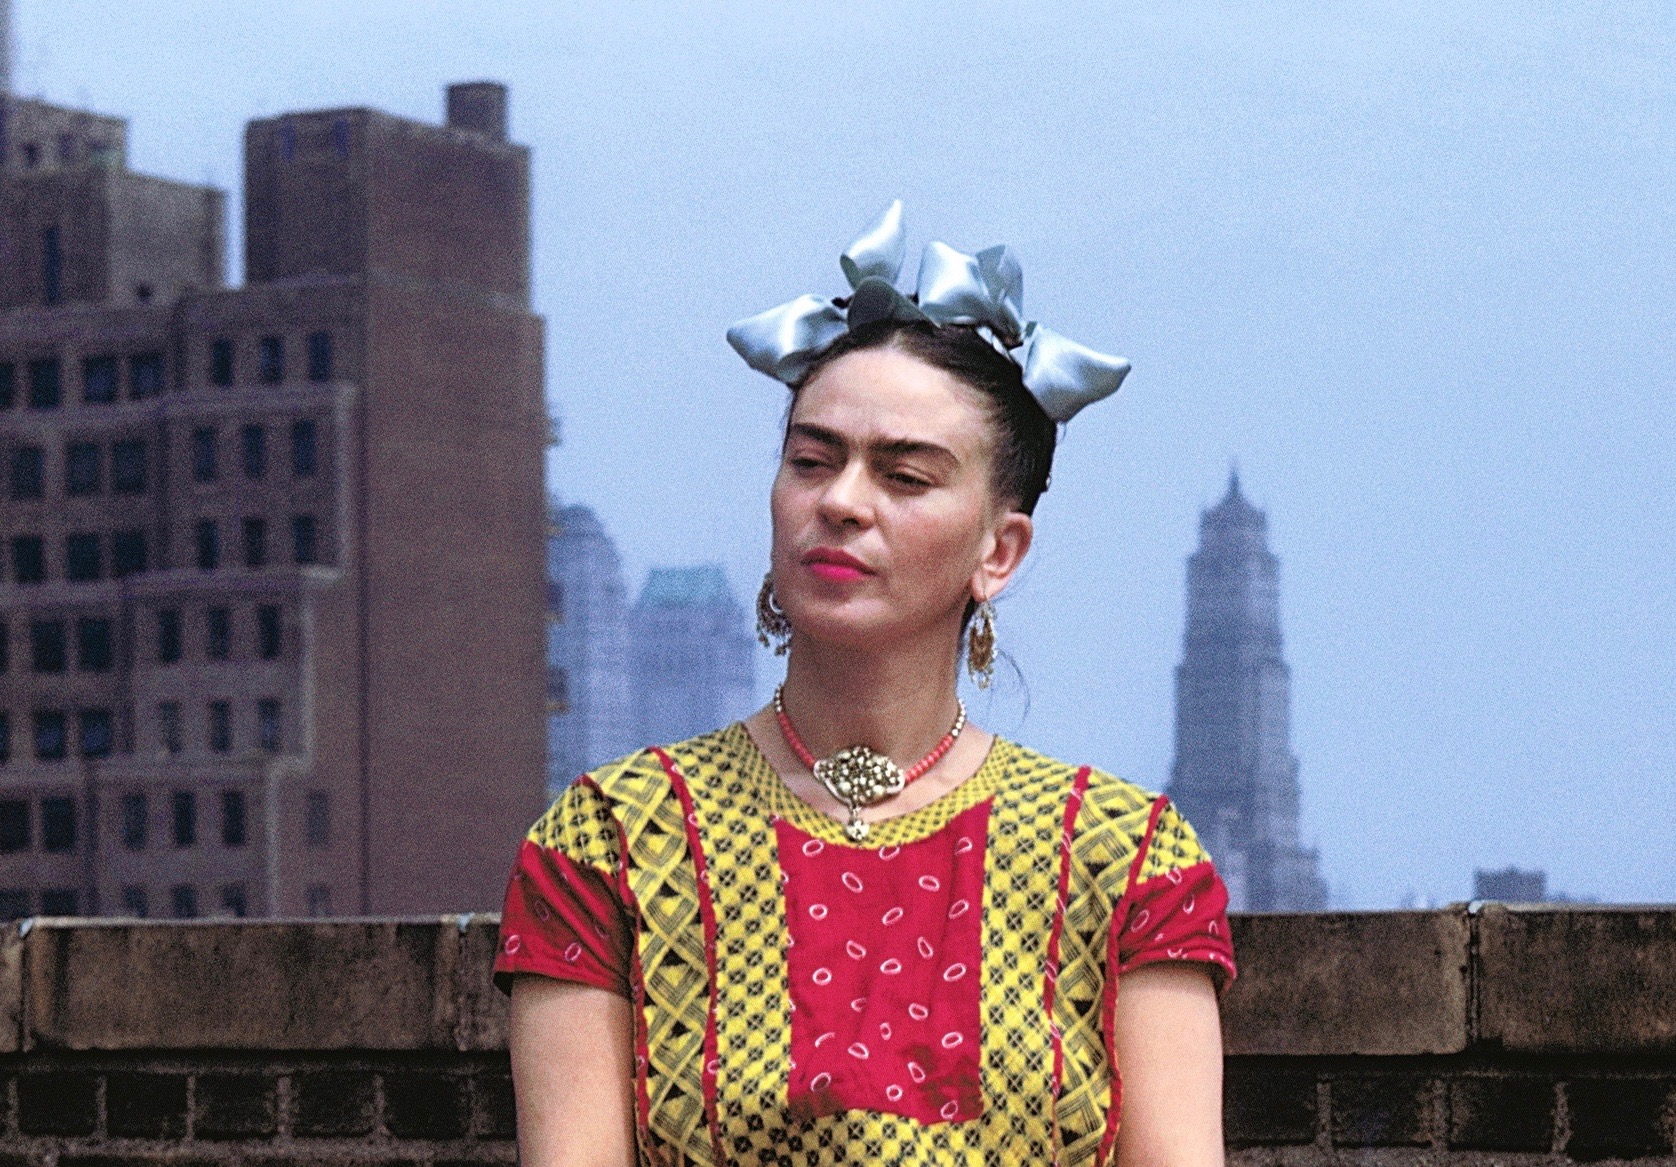 Frida Kahlo in Photos: Twinned Shows at The Frick Pittsburgh Reveal an Artist's Life